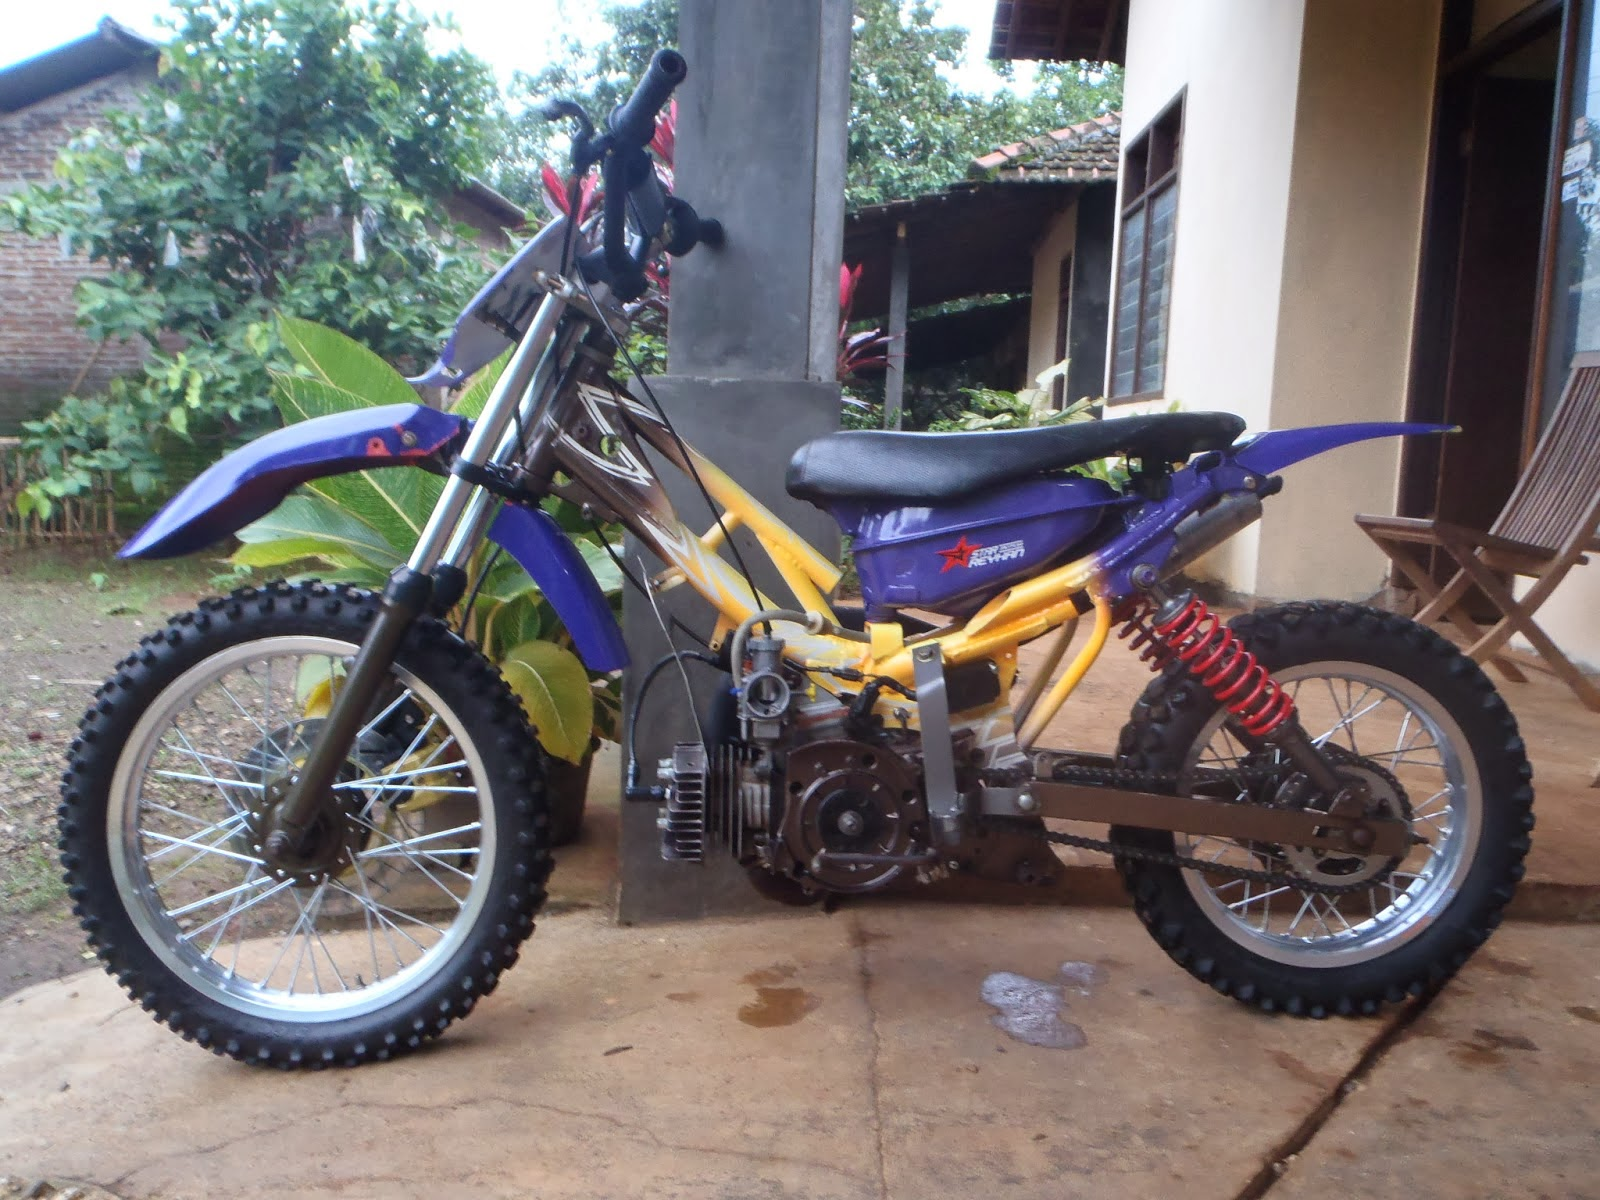 69 Modifikasi Motor Cross Fiz R Terkeren Klobot Modifikasi